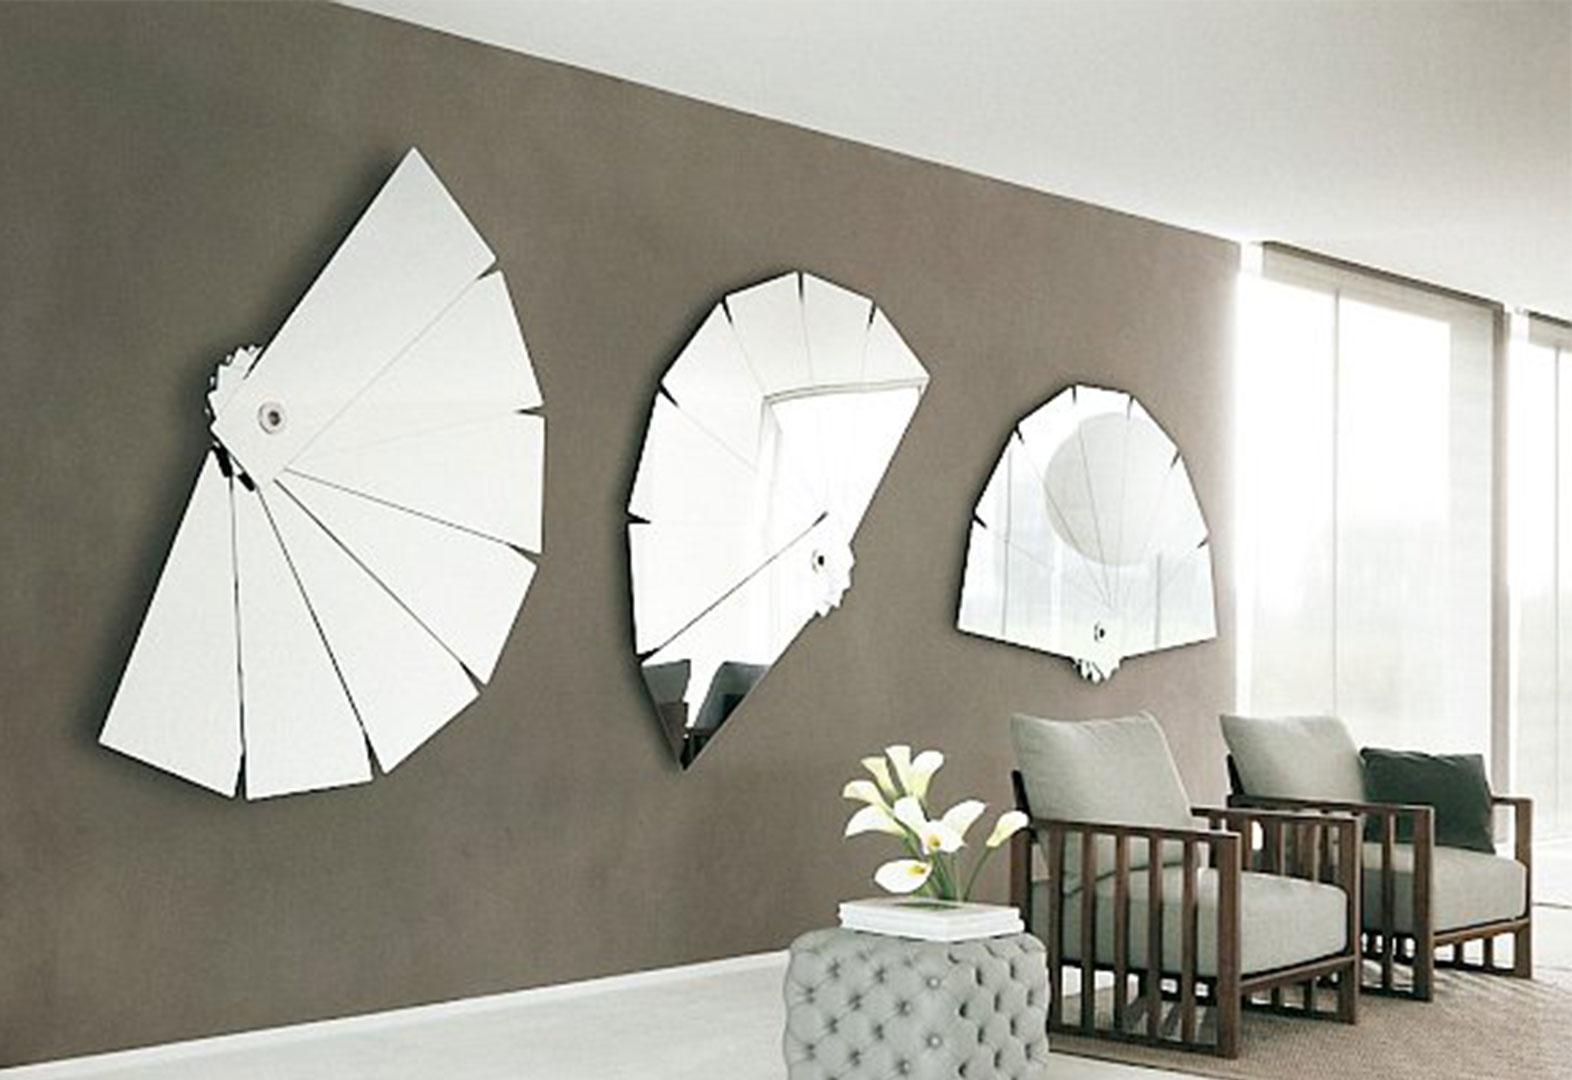 Large Modern Wall Mirrors Best Decorative Wall Mirrors Ideas With Regard To Cheap Contemporary Mirrors (View 13 of 15)